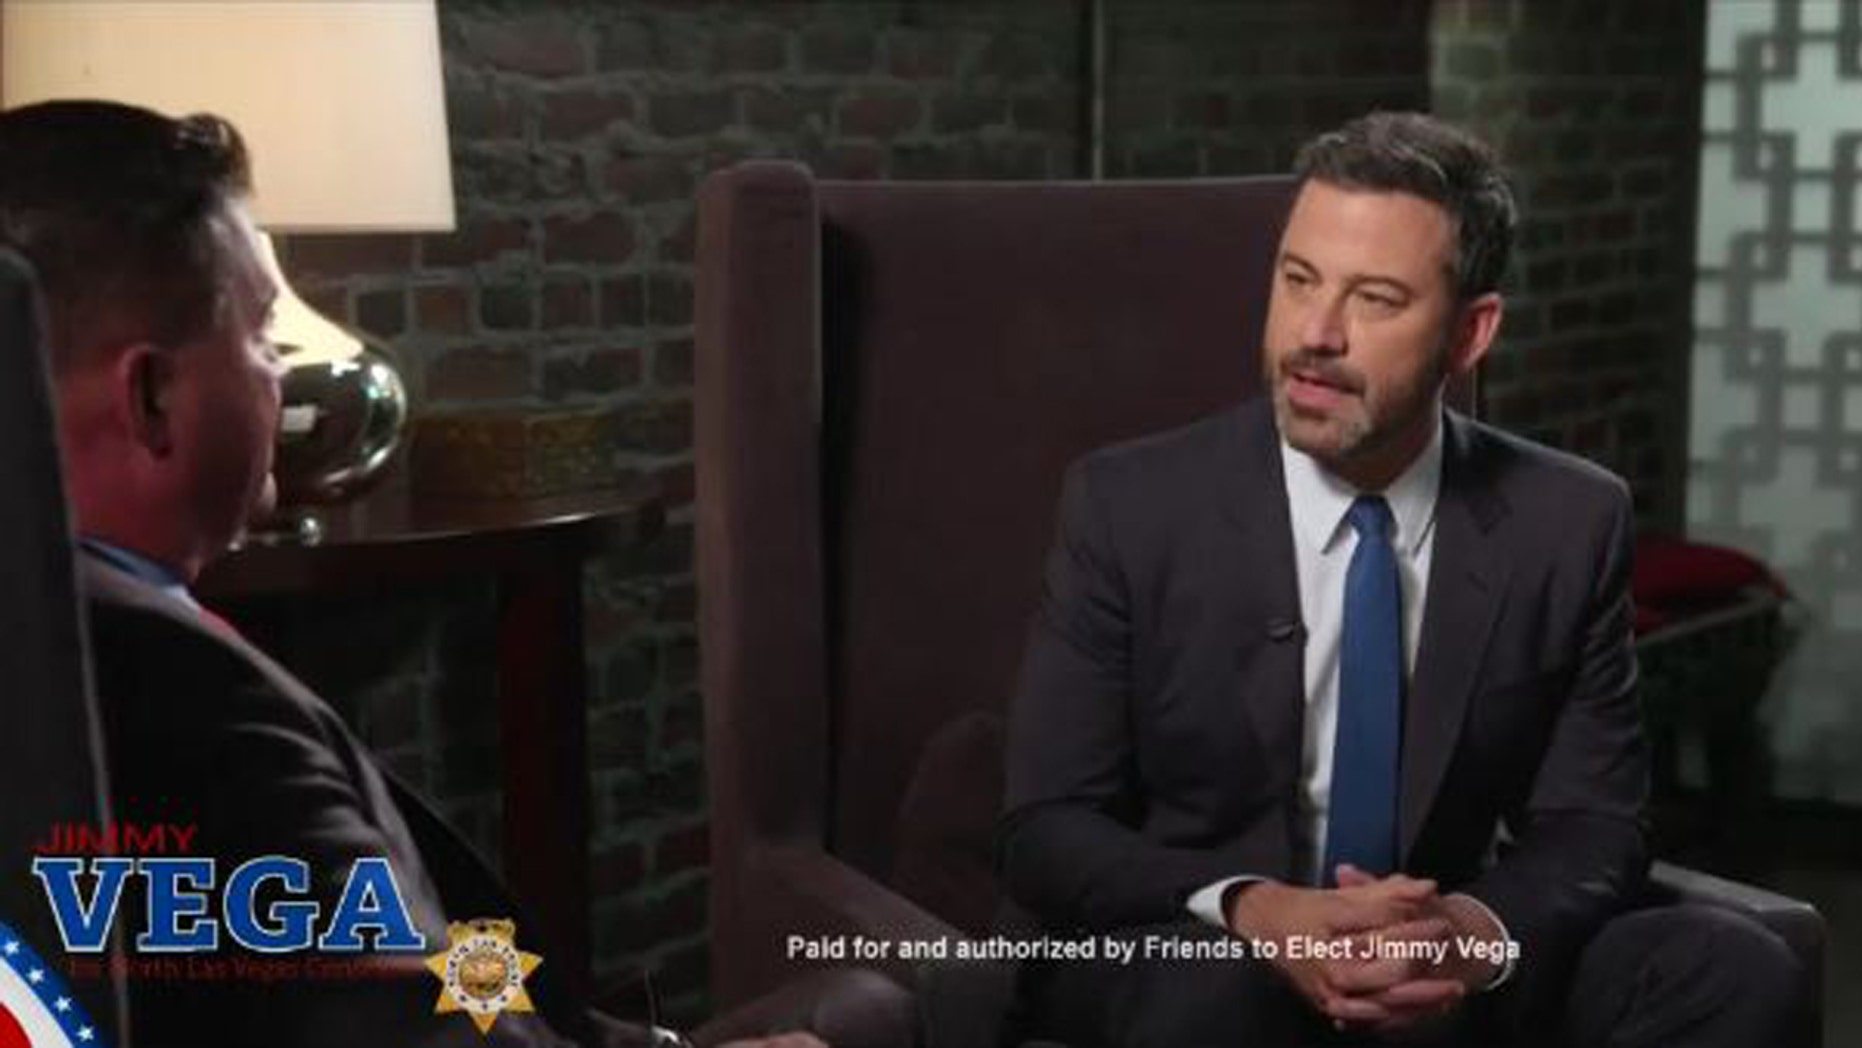 Jimmy Kimmel appears in a campaign video to support his old friend Jimmy Vega for the North Las Vegas agent.